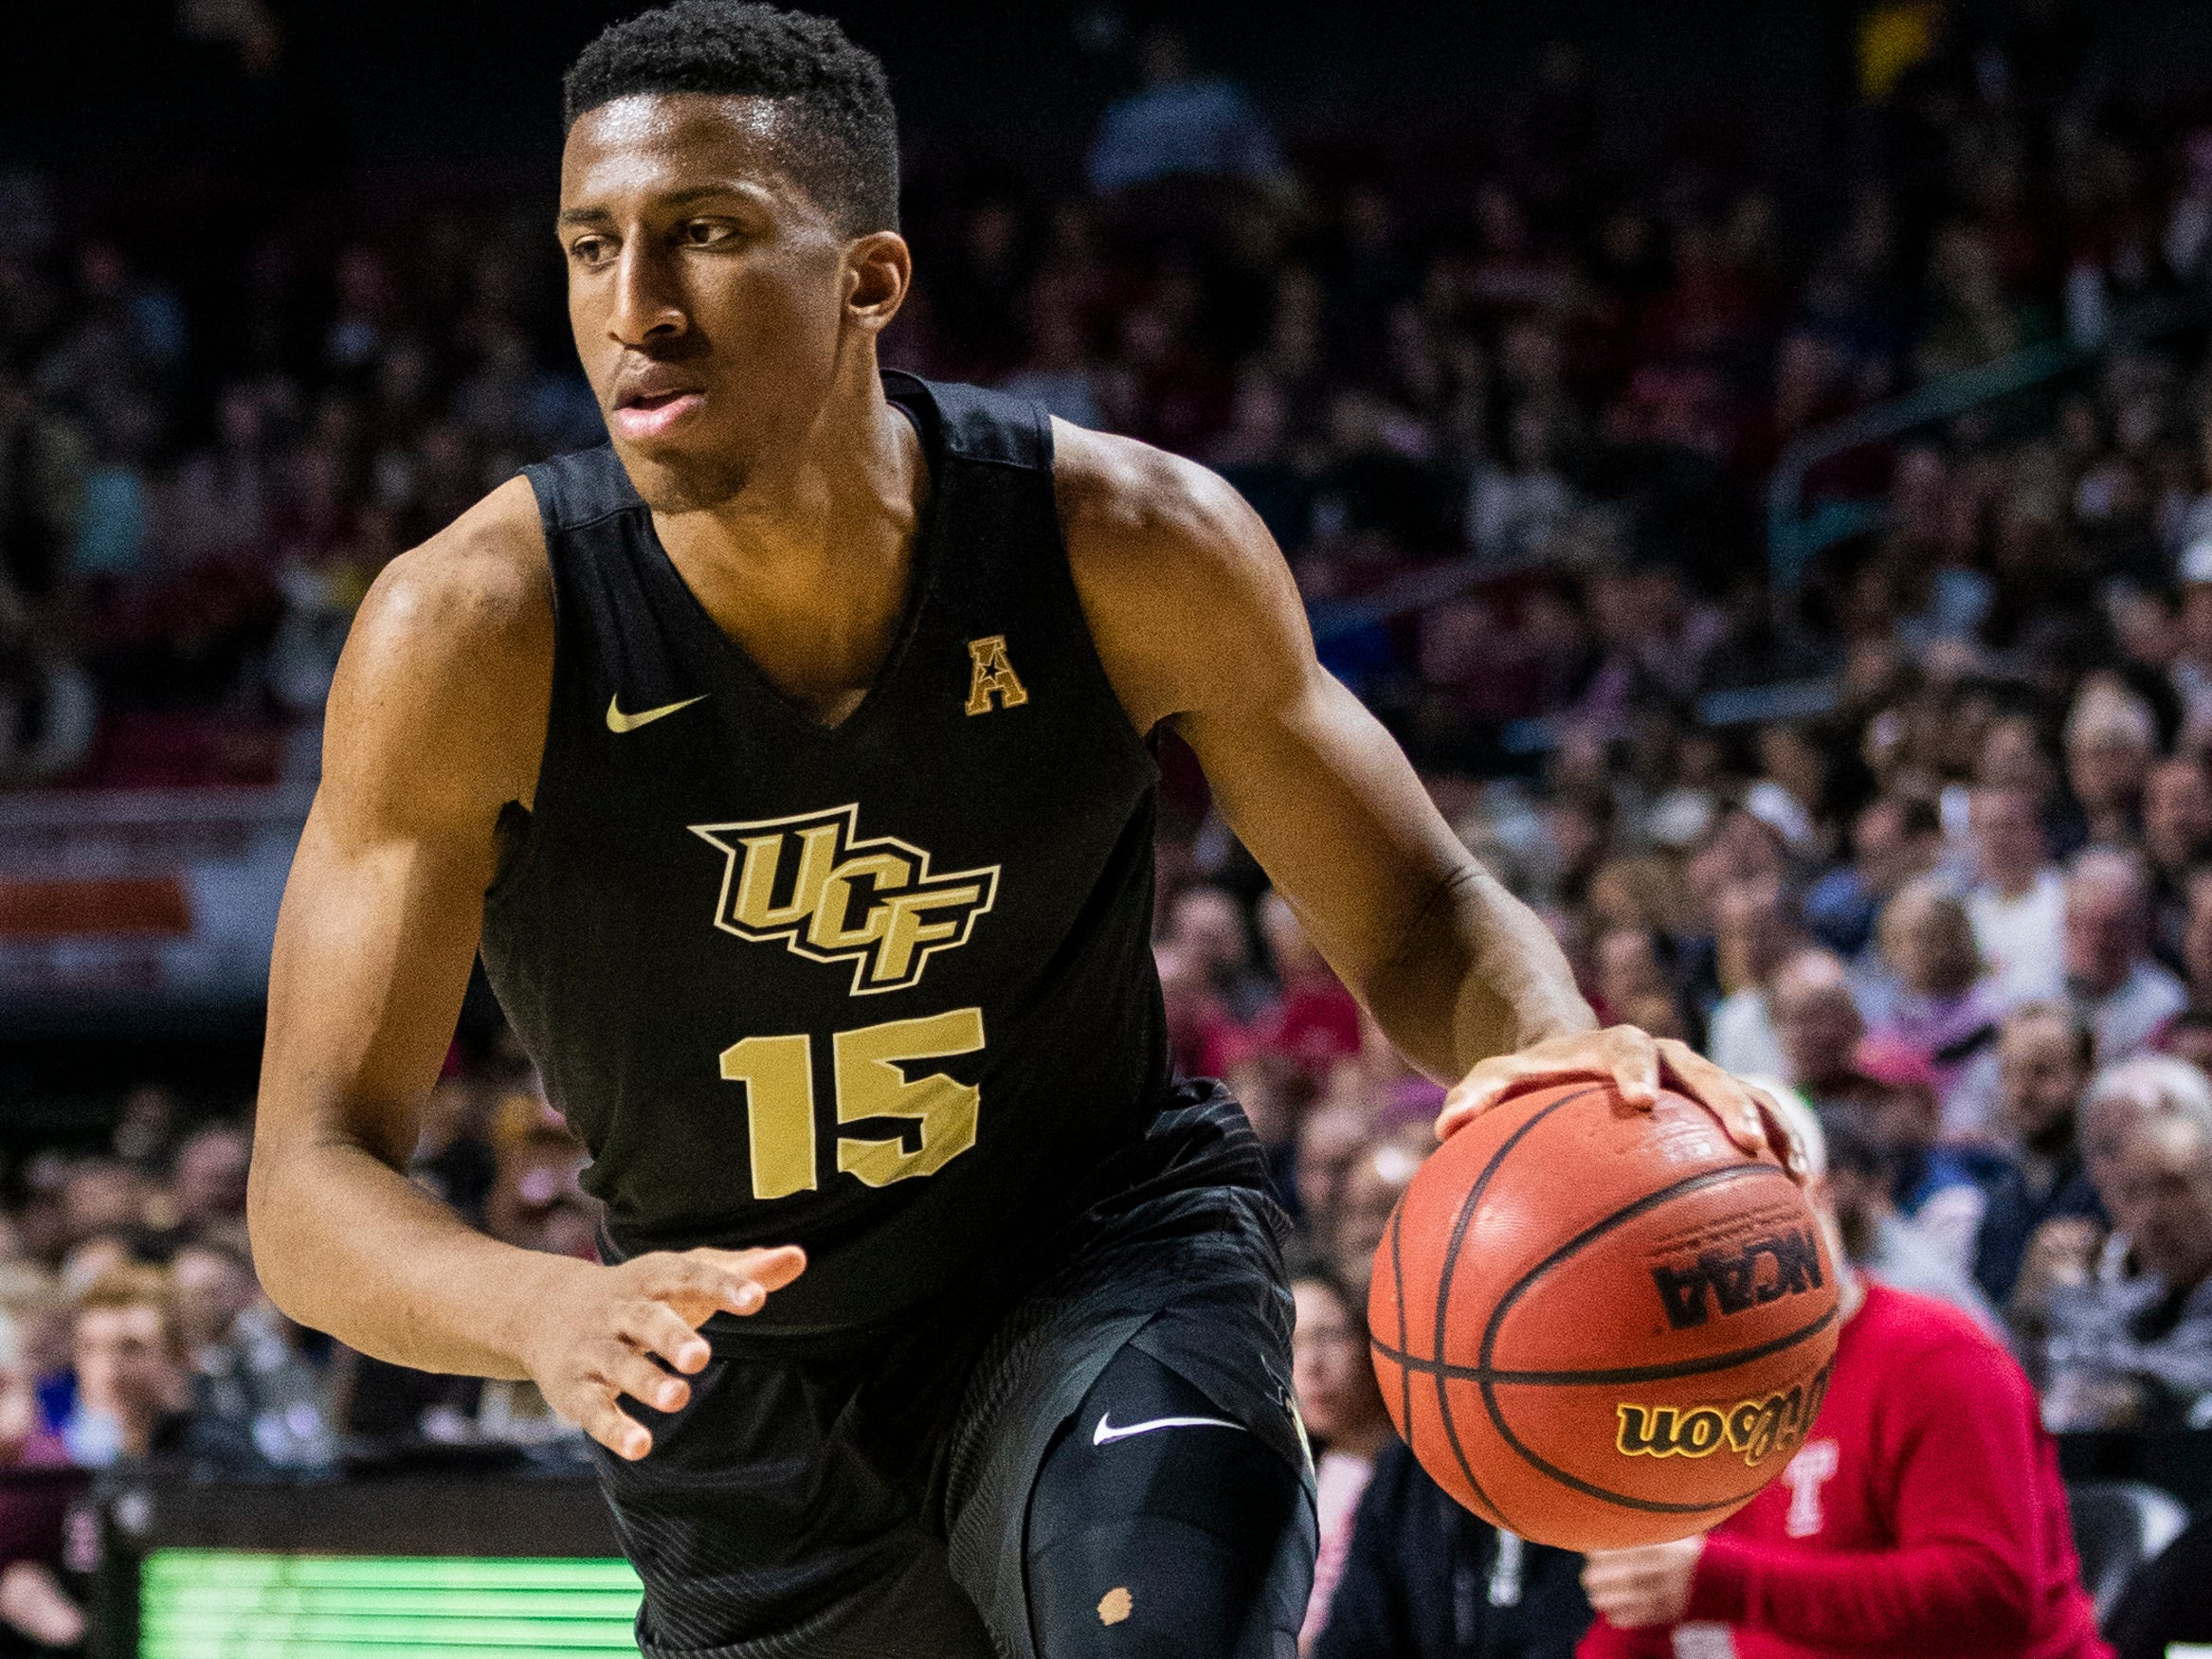 Aubrey Dawkins, 6-6 guard, RS junior, UCF (Michigan): Dawkins is second on the Golden Knights in scoring at  15.2 points per game, and top 3-point shooter at 39 percent (67 of 171). He's also averaging five rebounds per game.